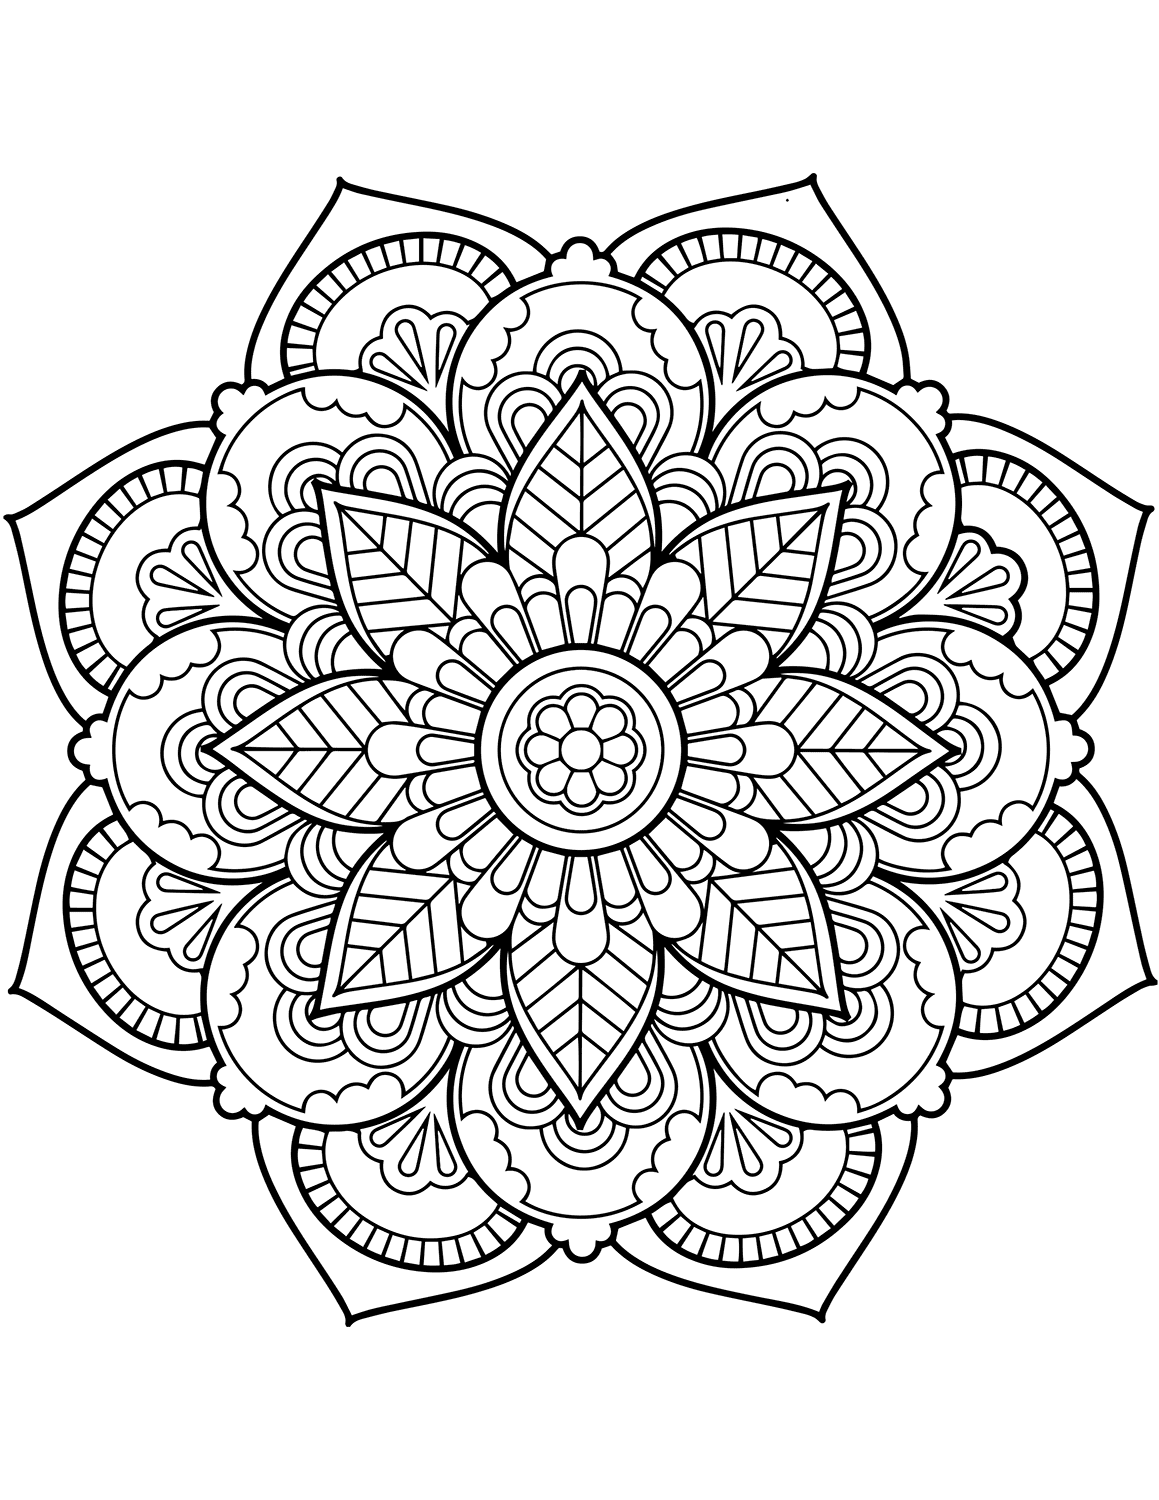 coloring mandala with color flower mandala coloring pages best coloring pages for kids coloring with color mandala